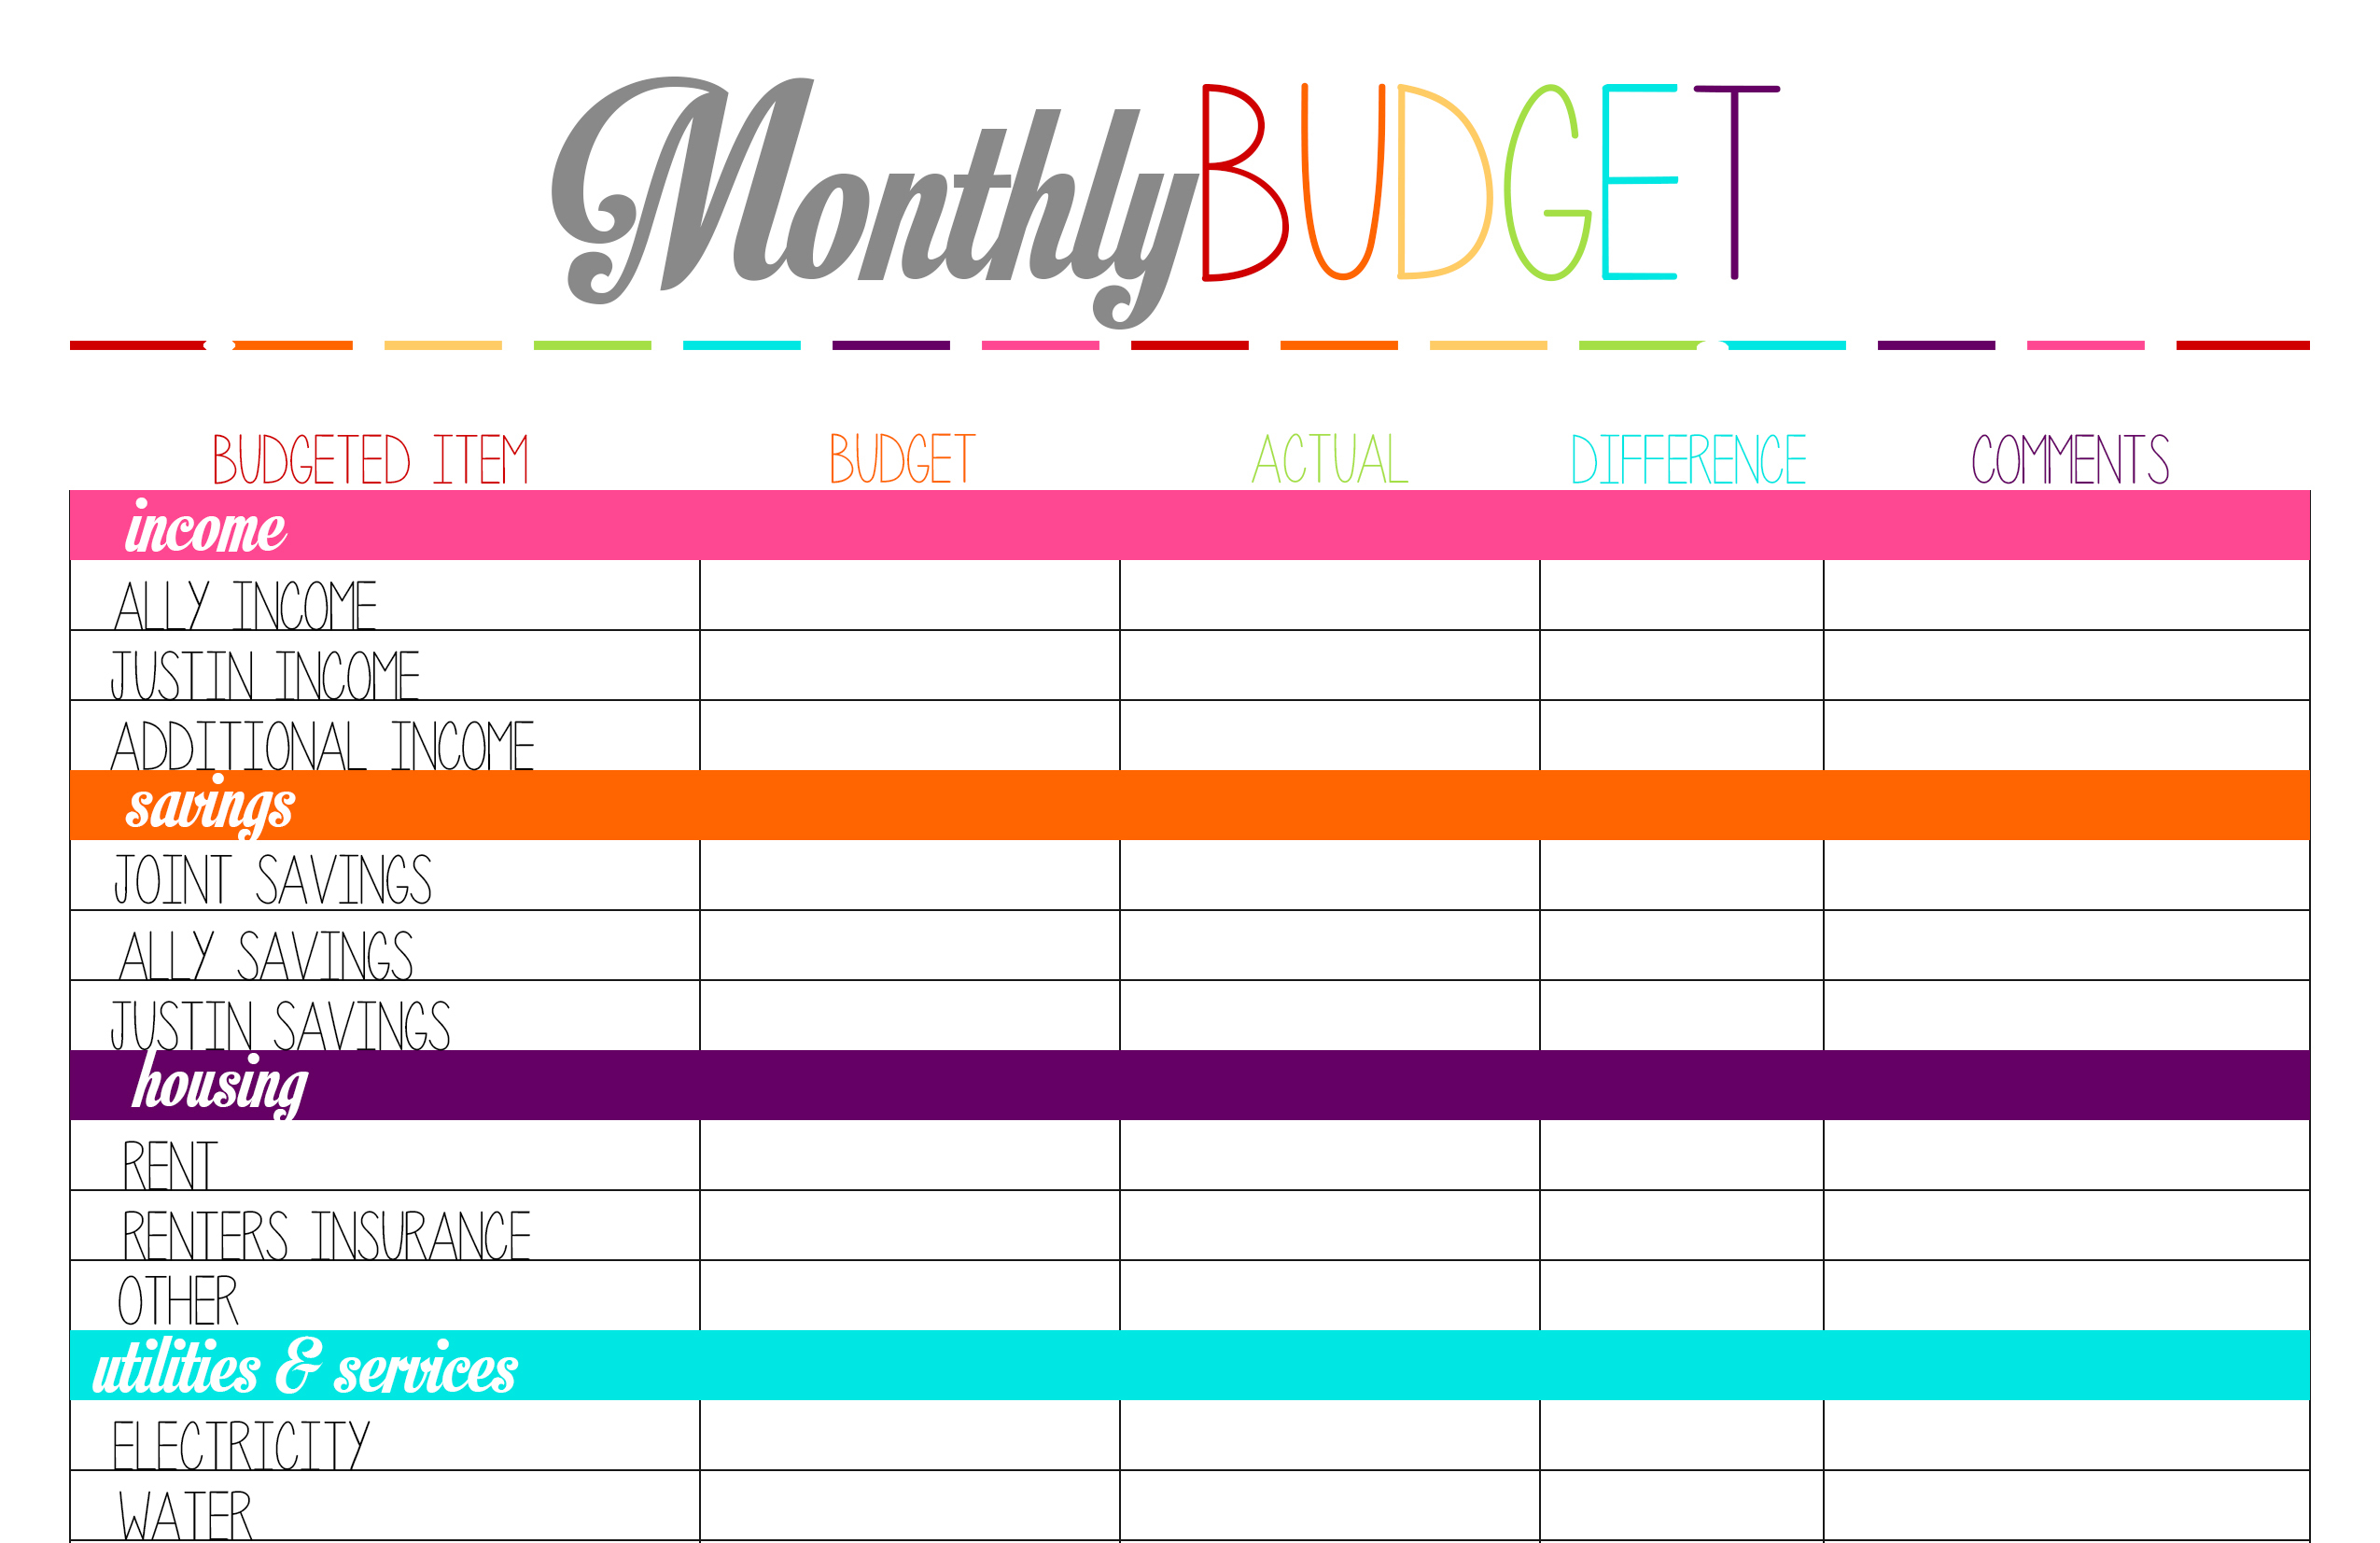 Free Budget Spreadsheet Printable In Free Printable Budget Worksheet Template Popular Free Printable